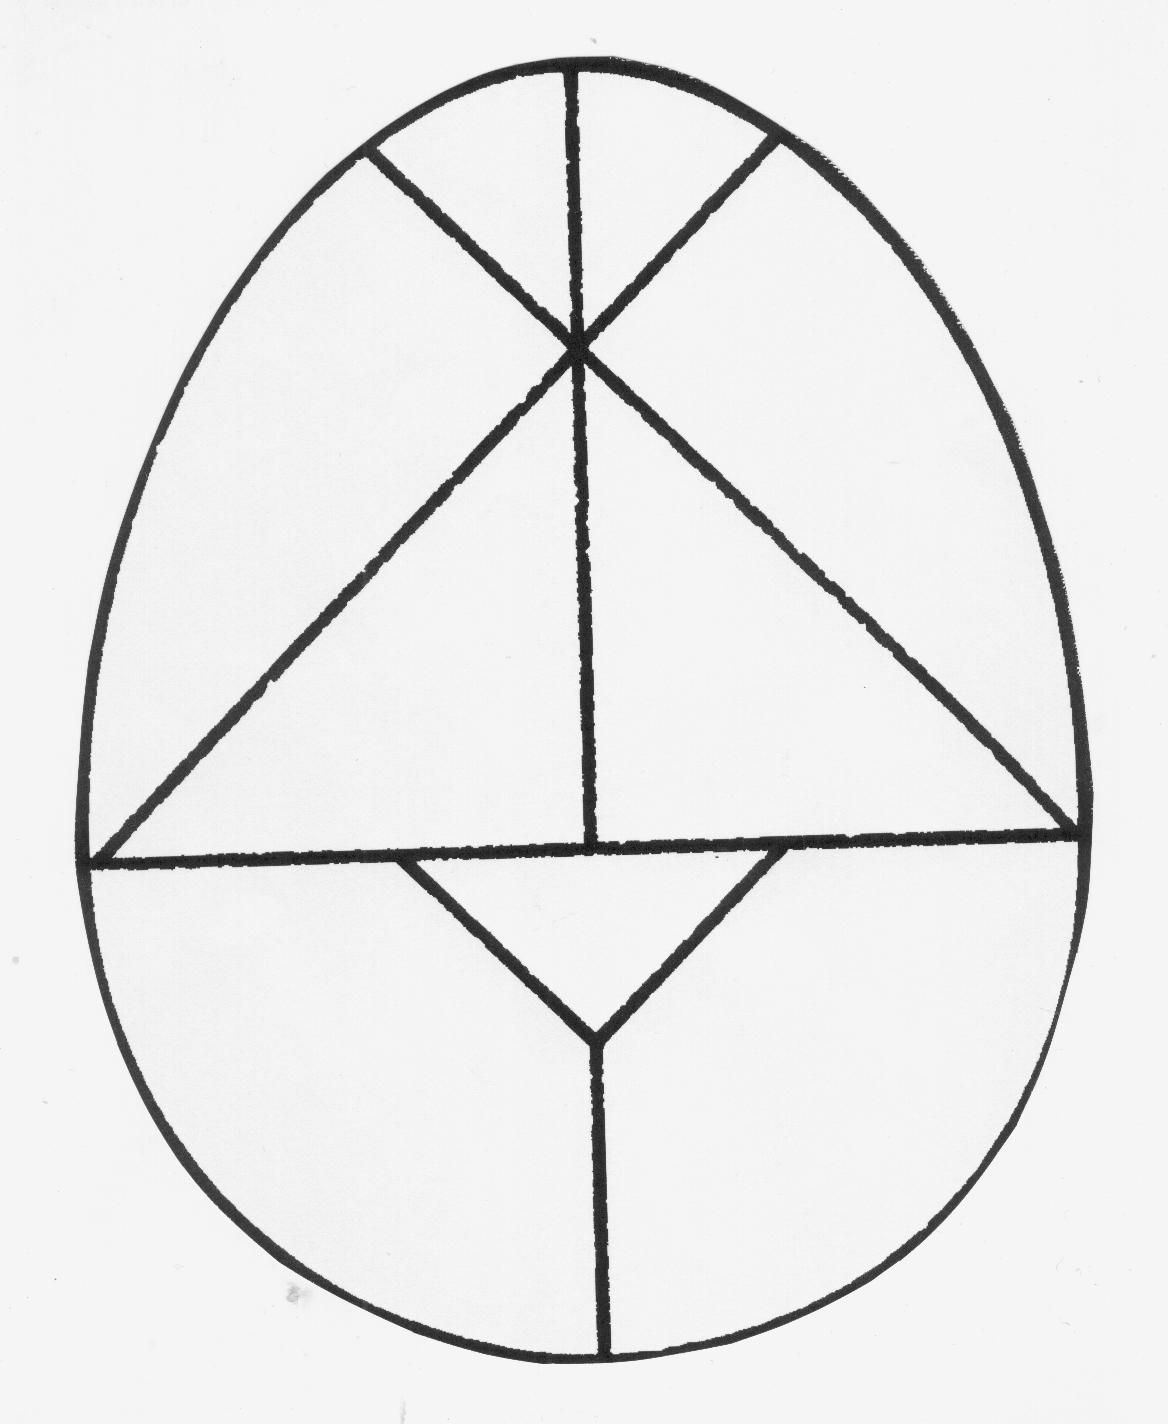 Easter egg tangram.  What shapes do I have?  What kind of triangles are found here?